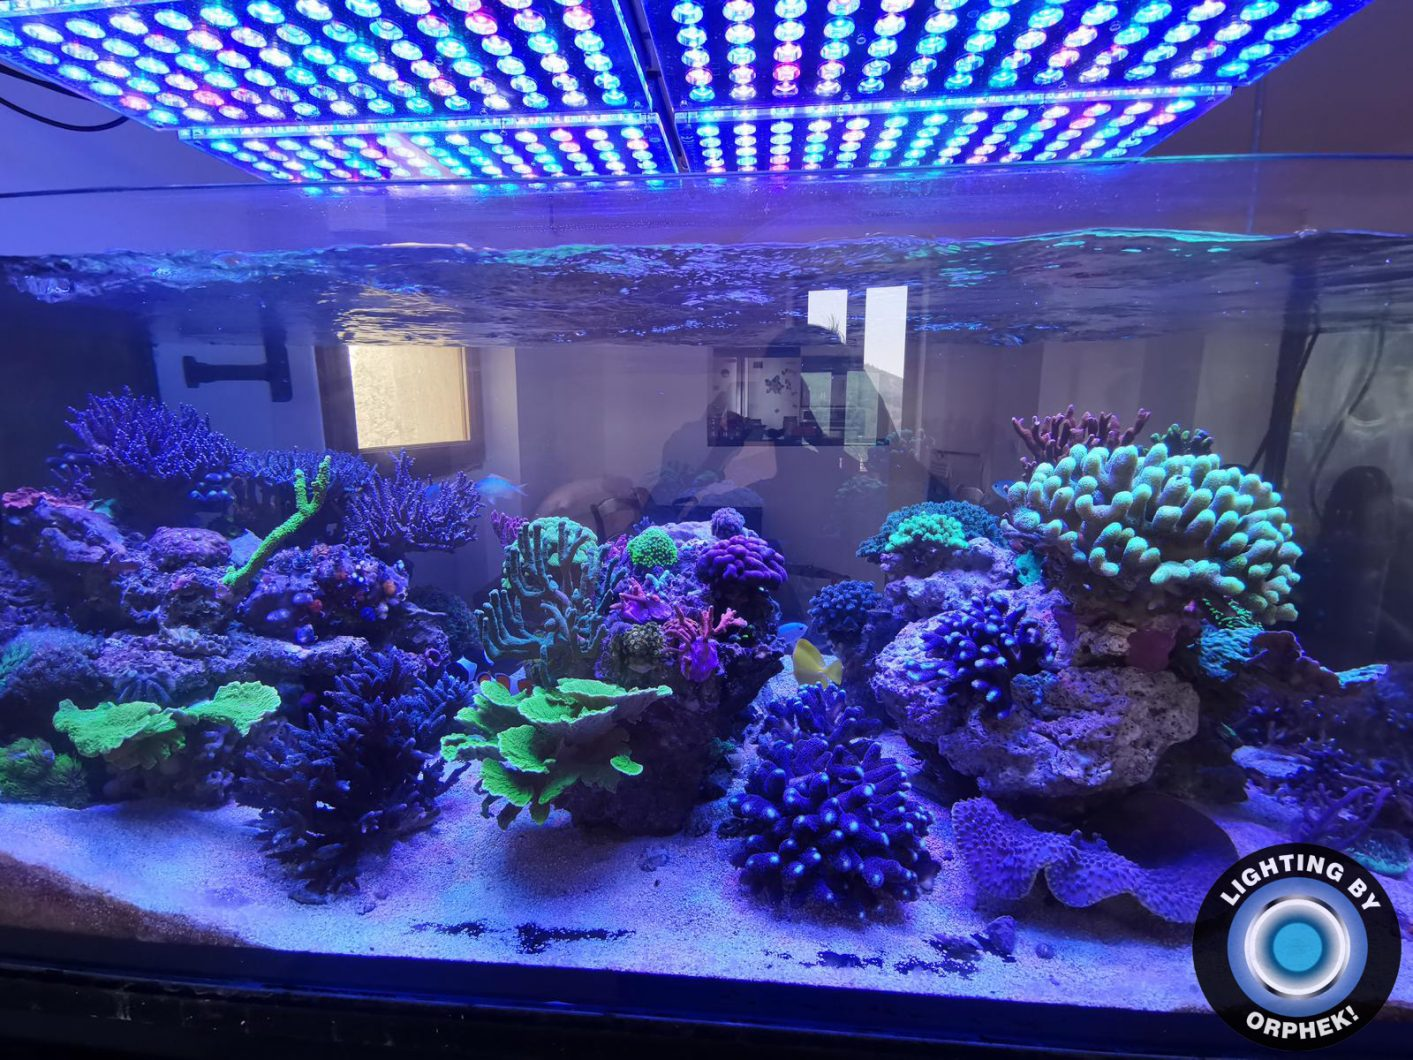 atlantik v4 snest reef aquarium lighting 2020